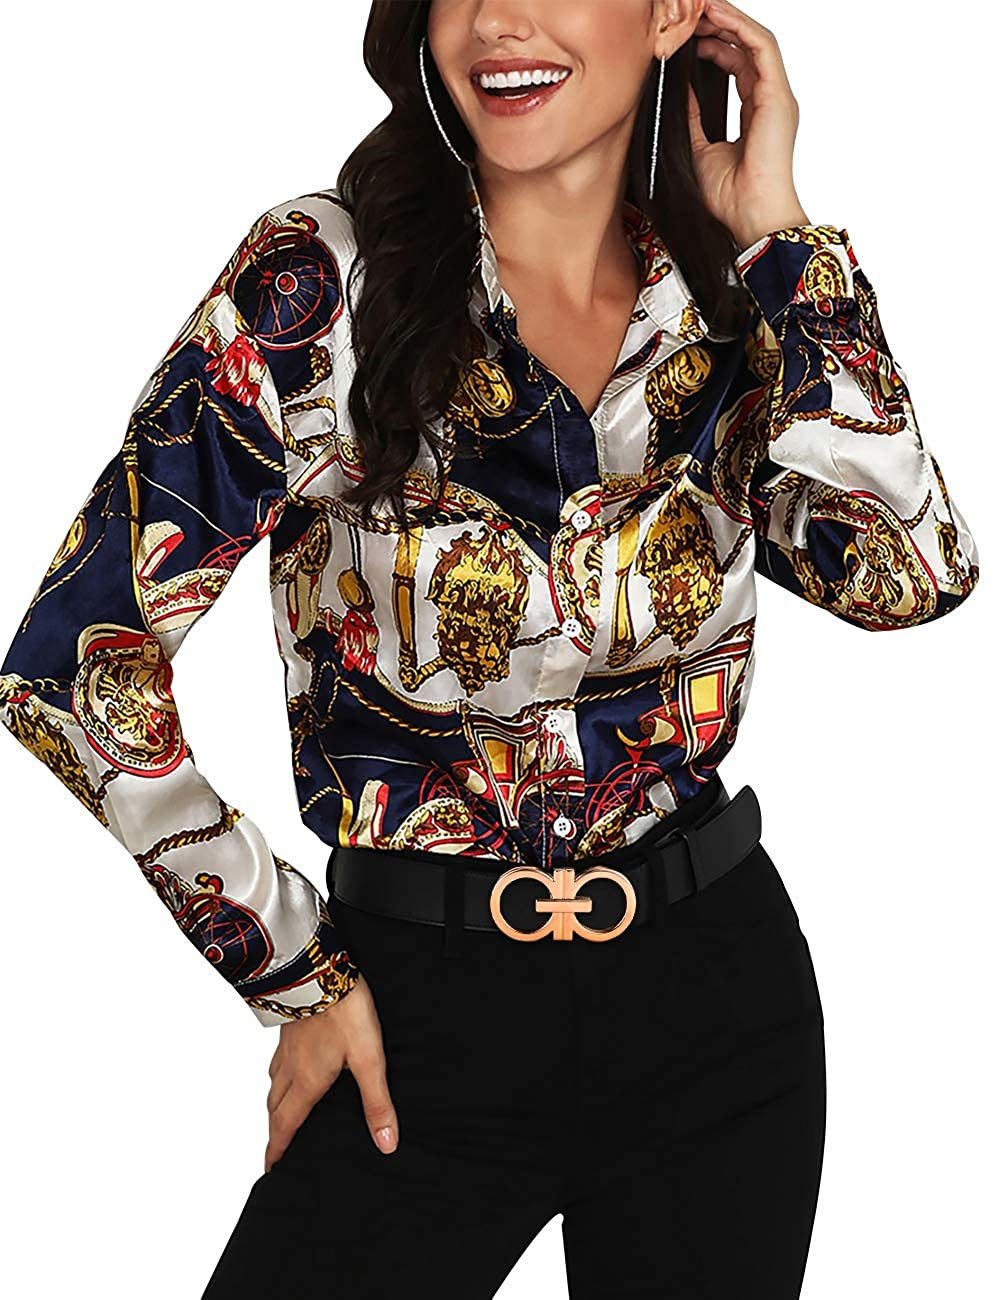 995a90042d44 MEROKEETY Women's Long Sleeve V Neck Floral Chain Print Shirt Casual Button  Down Blouse Tops at Amazon Women's Clothing store: